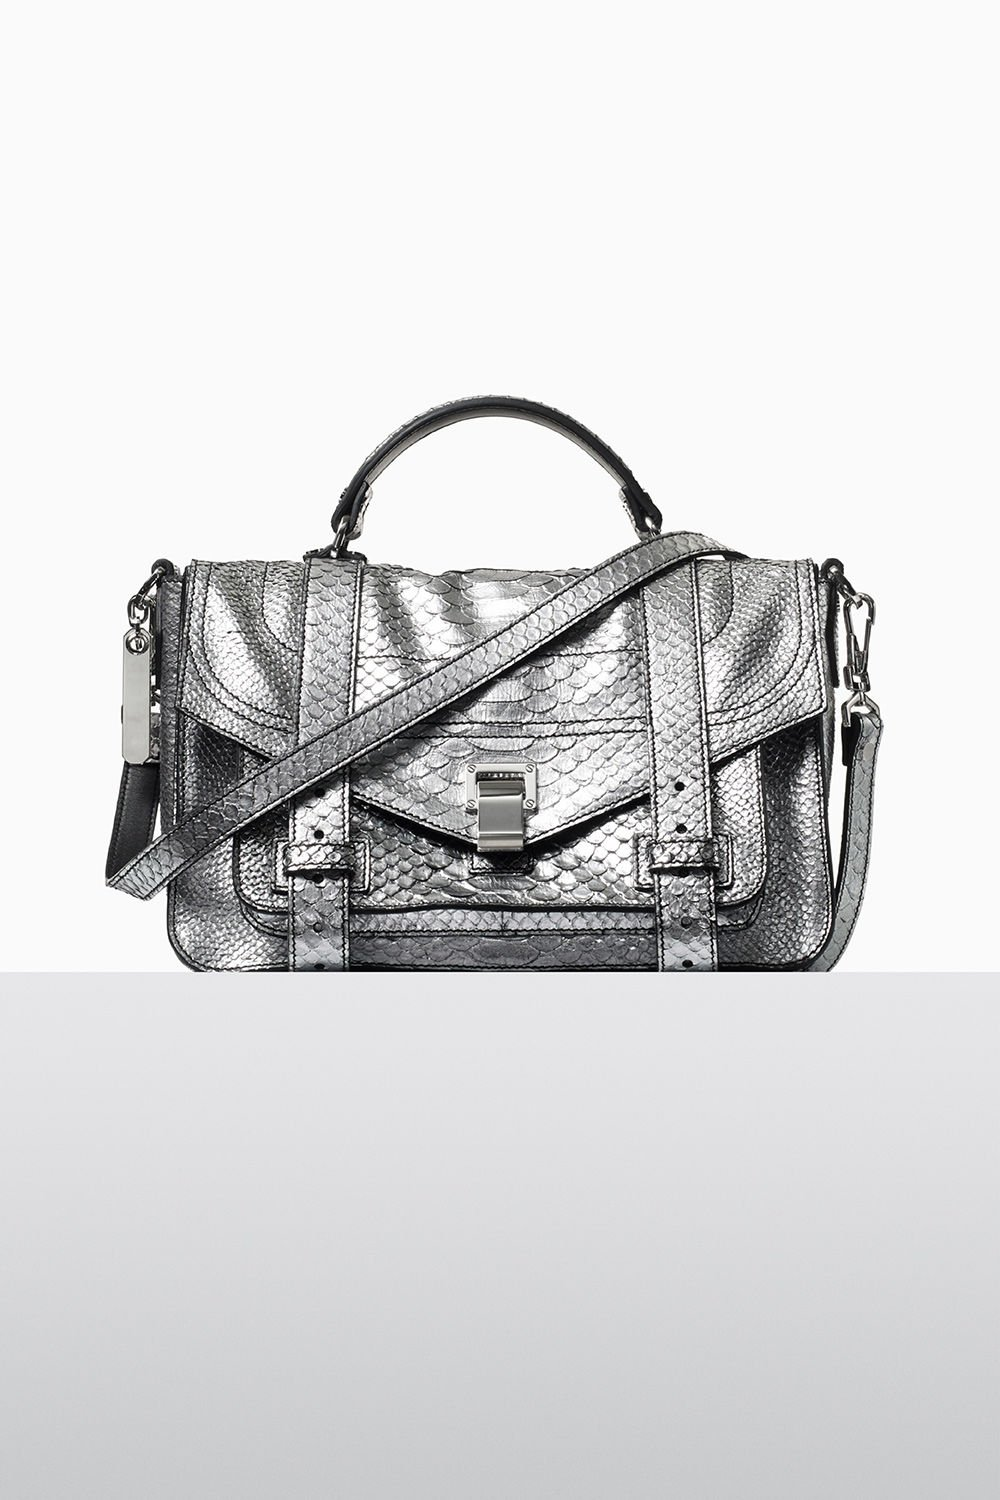 proenza schouler fall 2017 silver metallic embossed python ps1+ medium bag